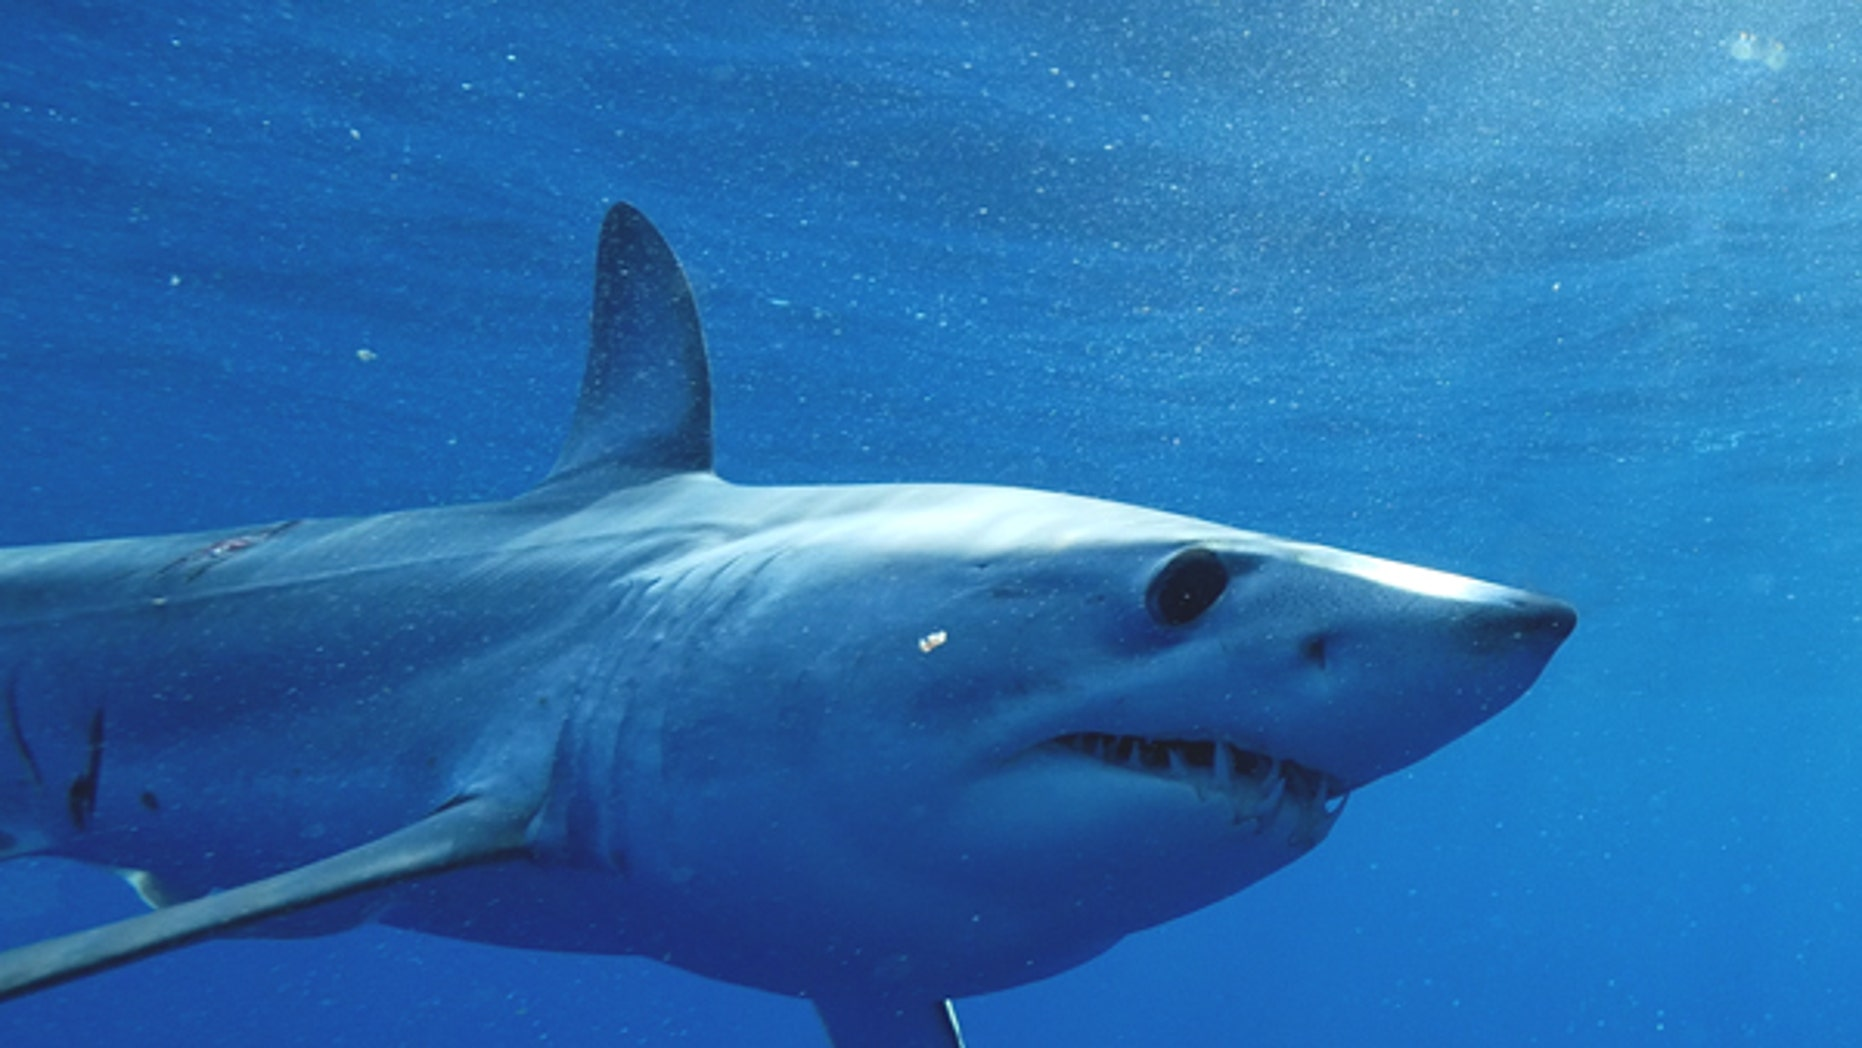 The world's fastest shark -- a mako shark -- is now an endangered species, according to the International Union for the Conservation of Nature (IUCN).